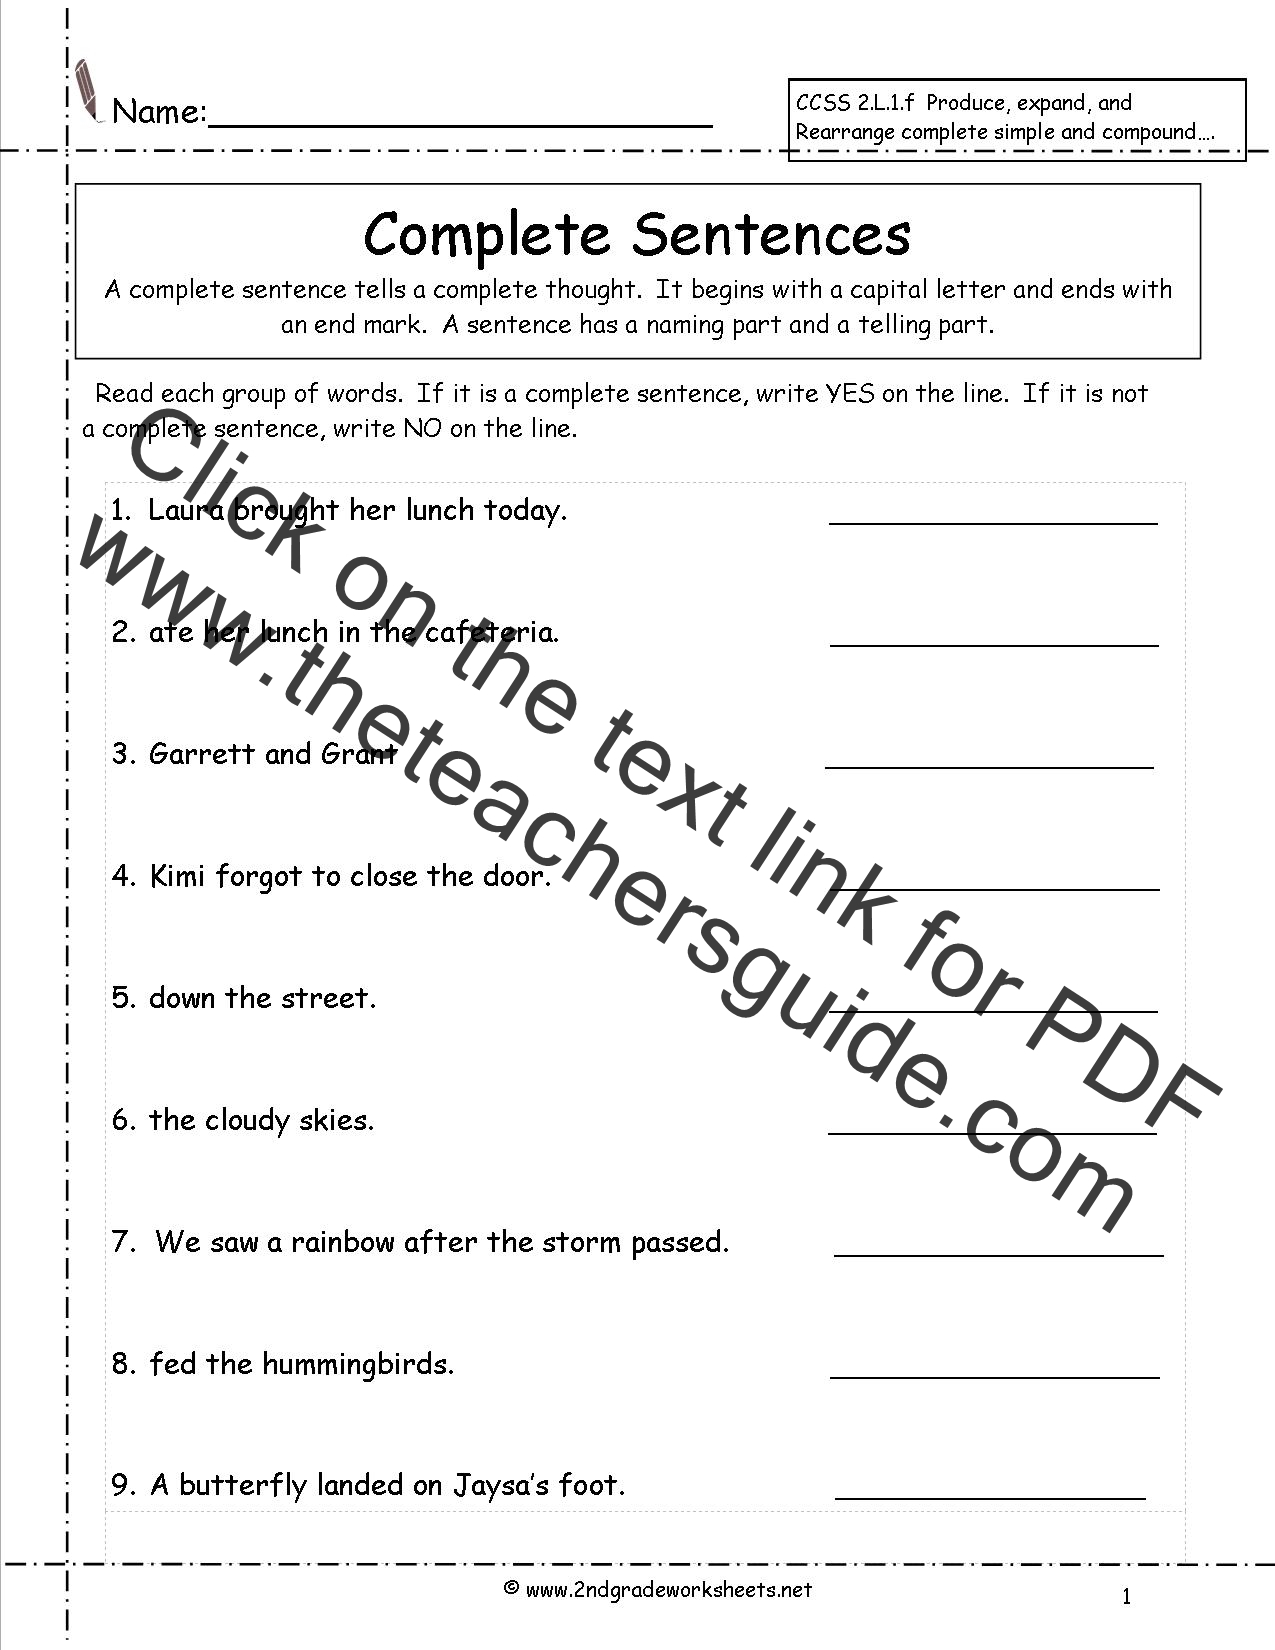 Printables Simple Sentences Worksheet second grade sentences worksheets ccss 2 l 1 f complete worksheets